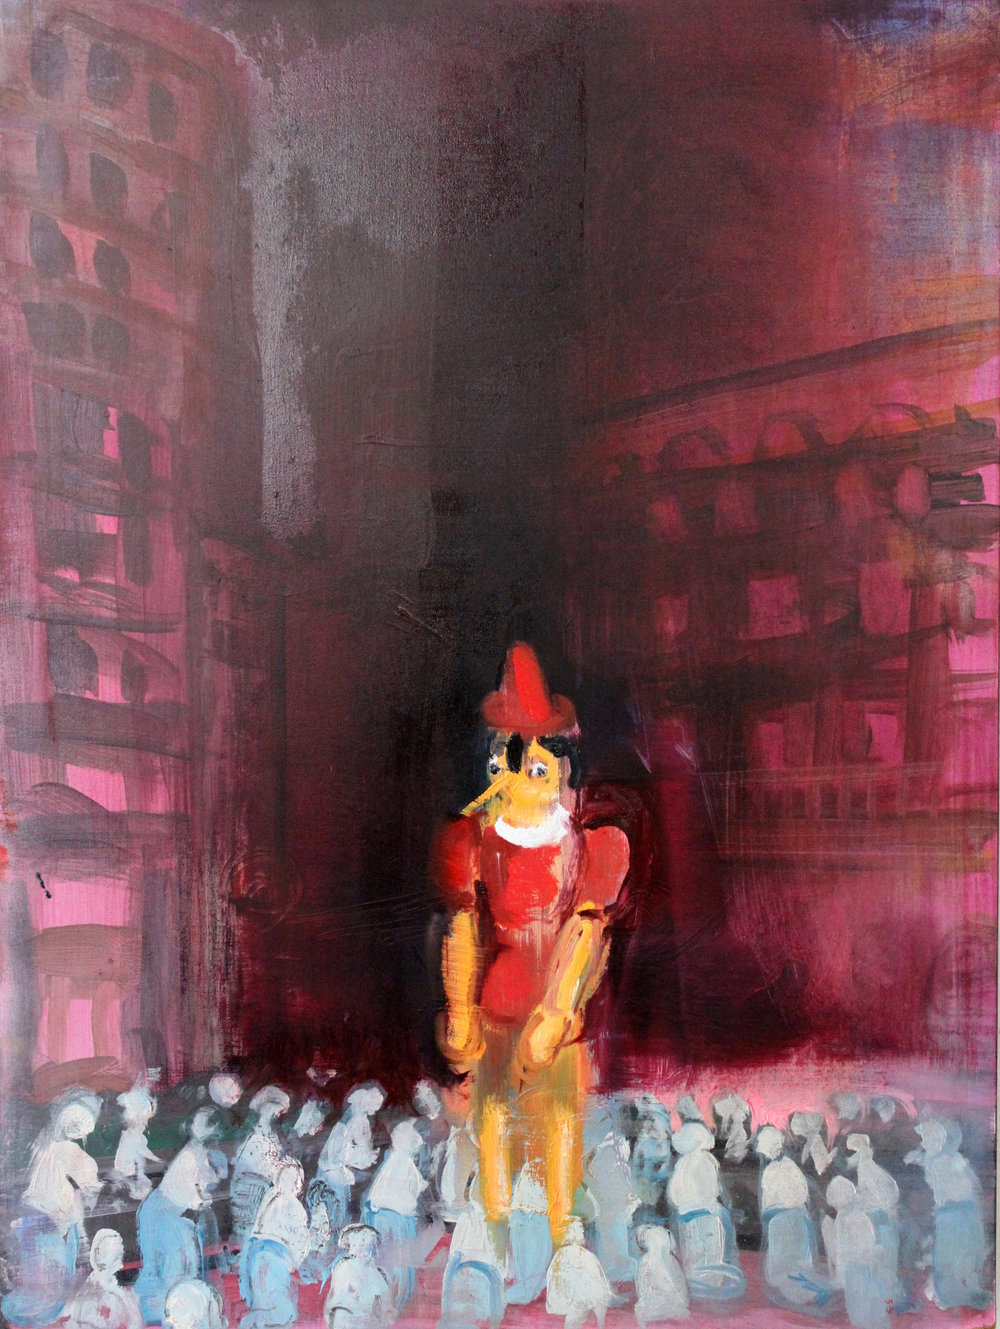 Copy of Pinocchio and the Public, 2017